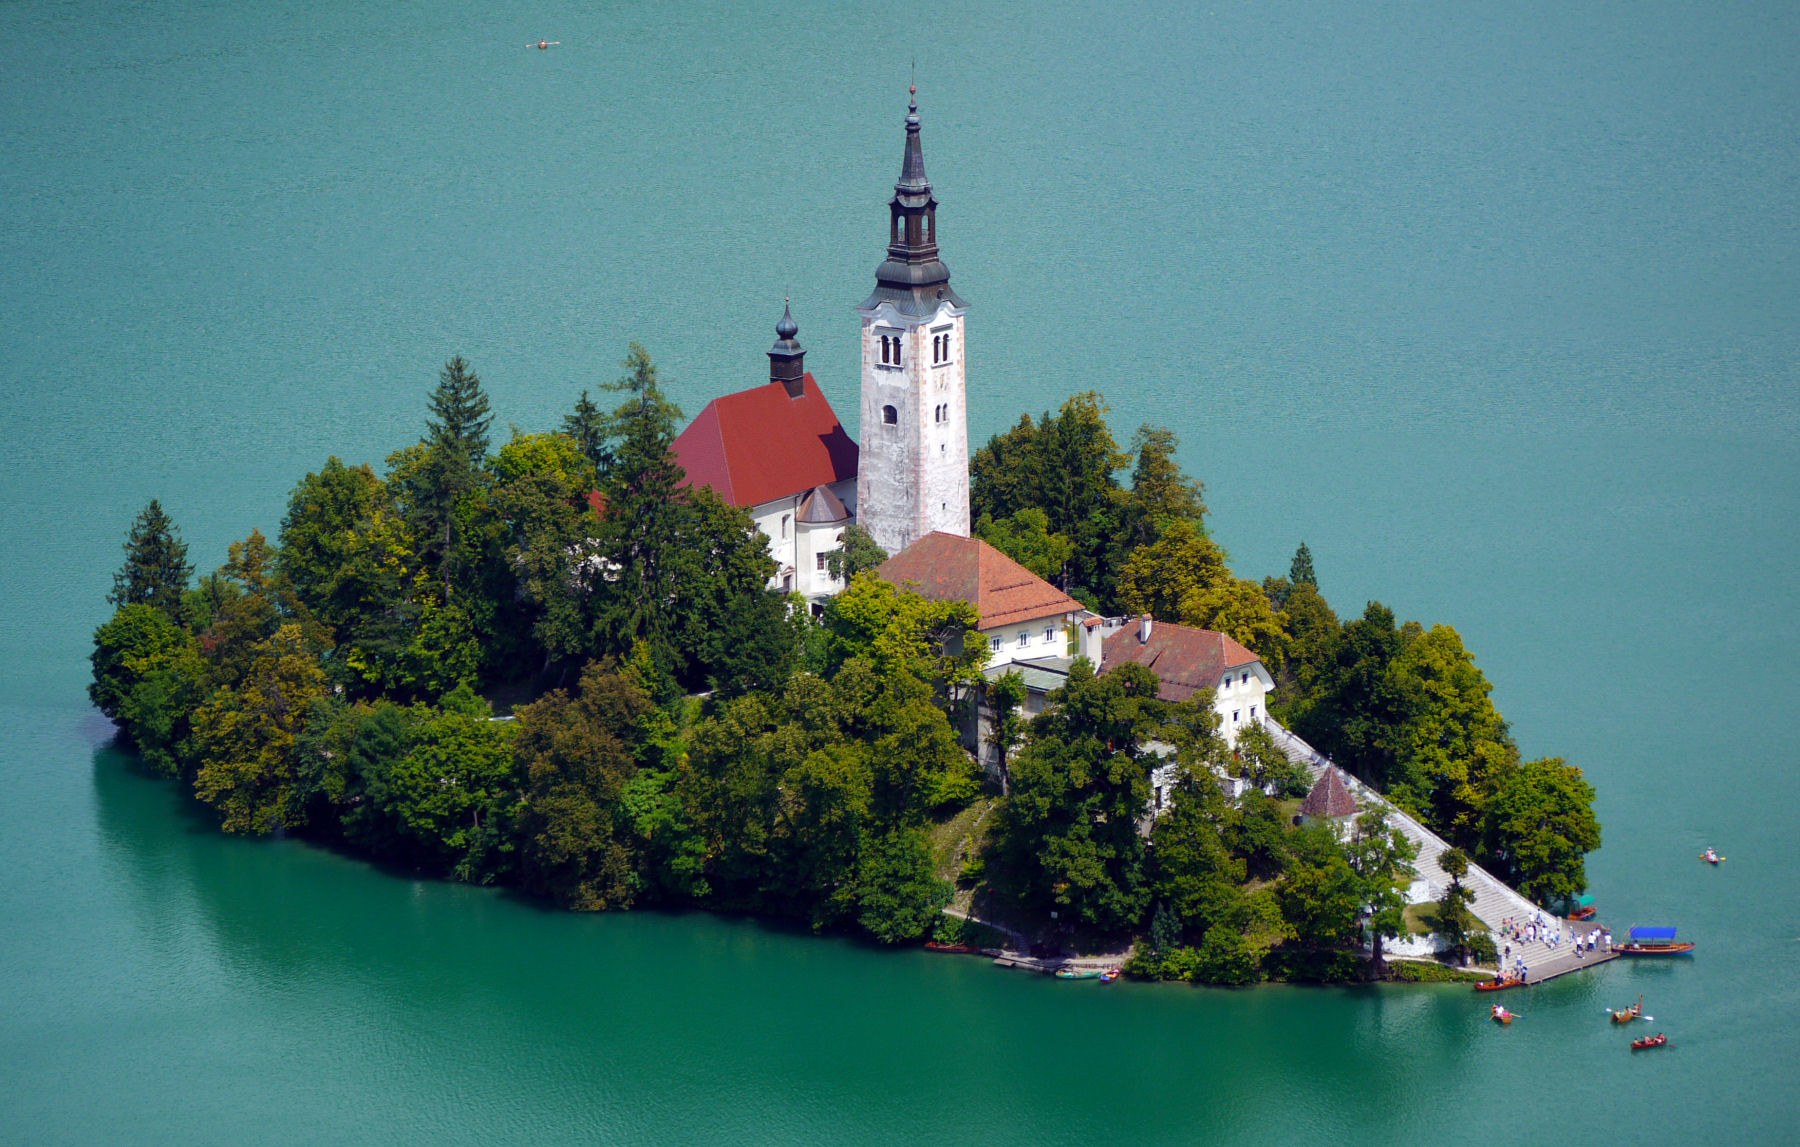 Church On Island In The Middle Of Bled Lake. Slovenia Stock Photo ...